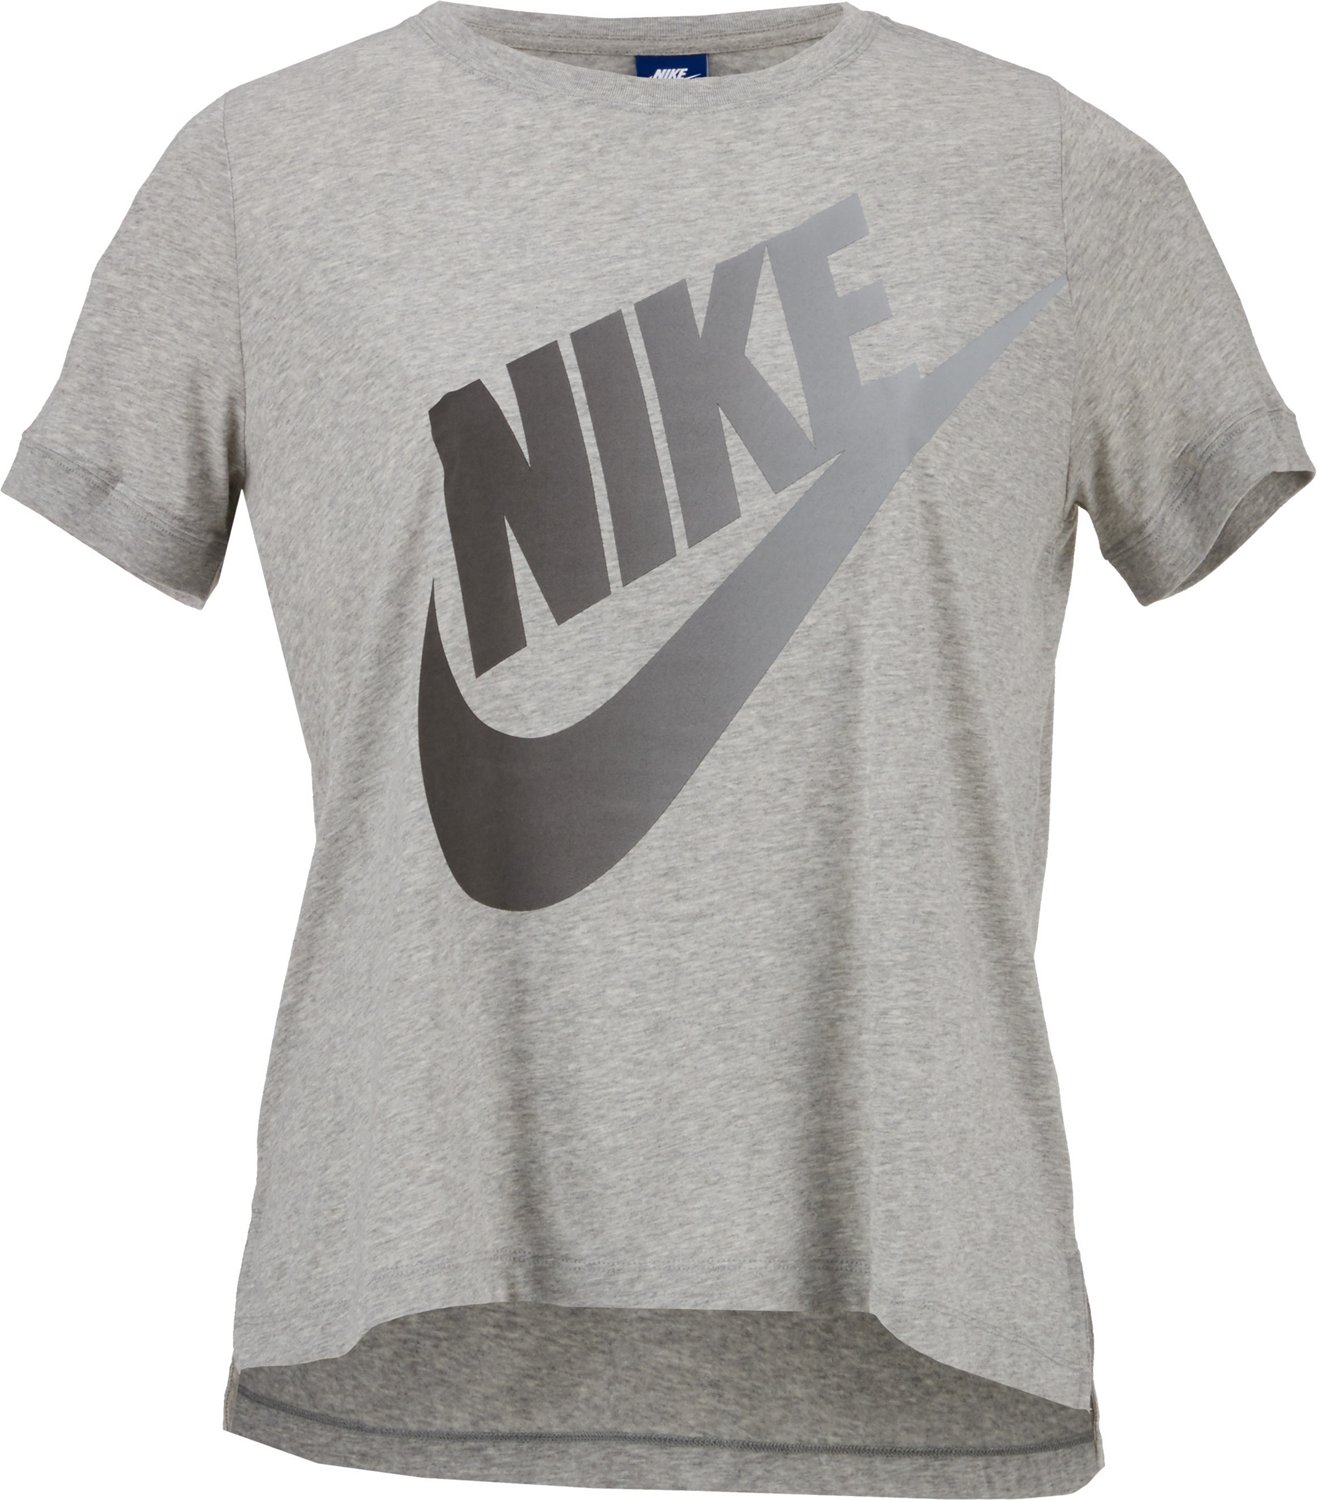 eac80dec43e72 Display product reviews for Nike Women s Logo Futura Ext Plus Size Short  Sleeve Top